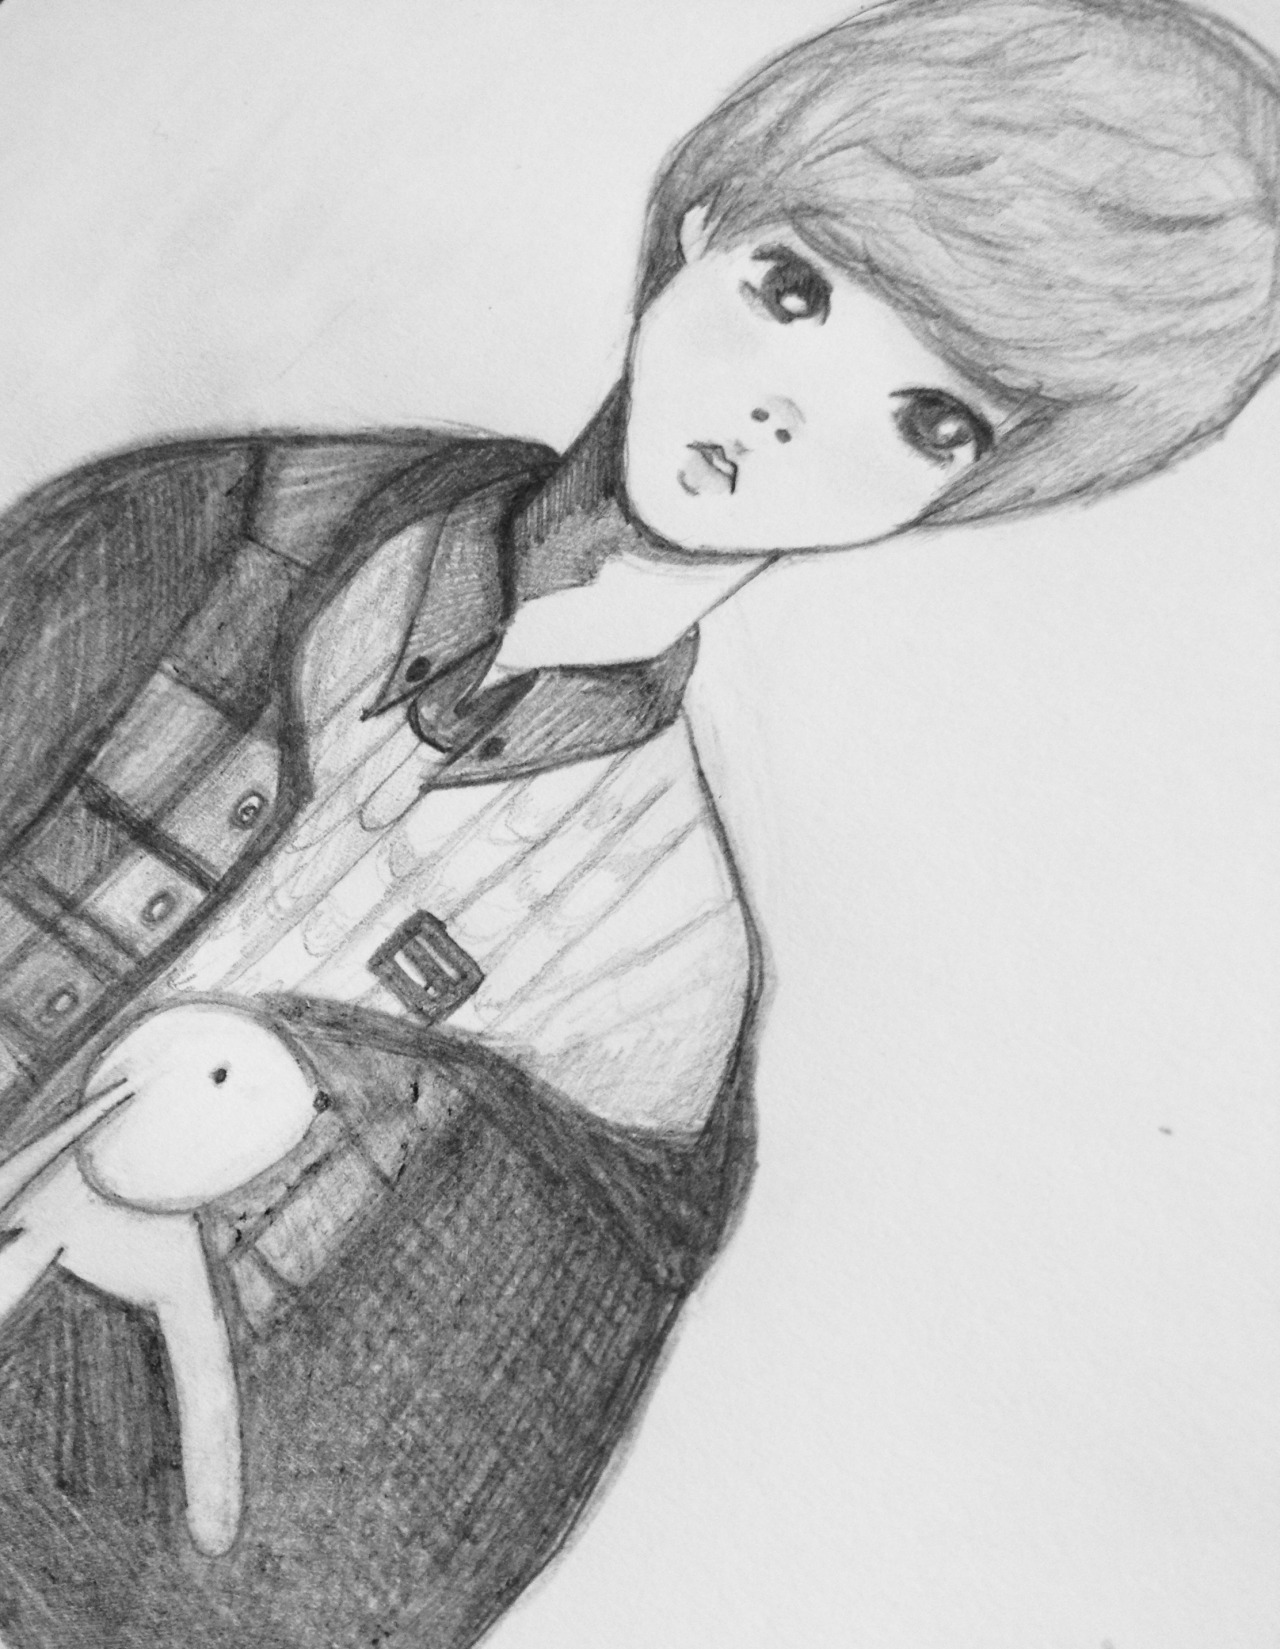 luhan drawing; airport 150113 with bunny rabbit - unfinished  ♡